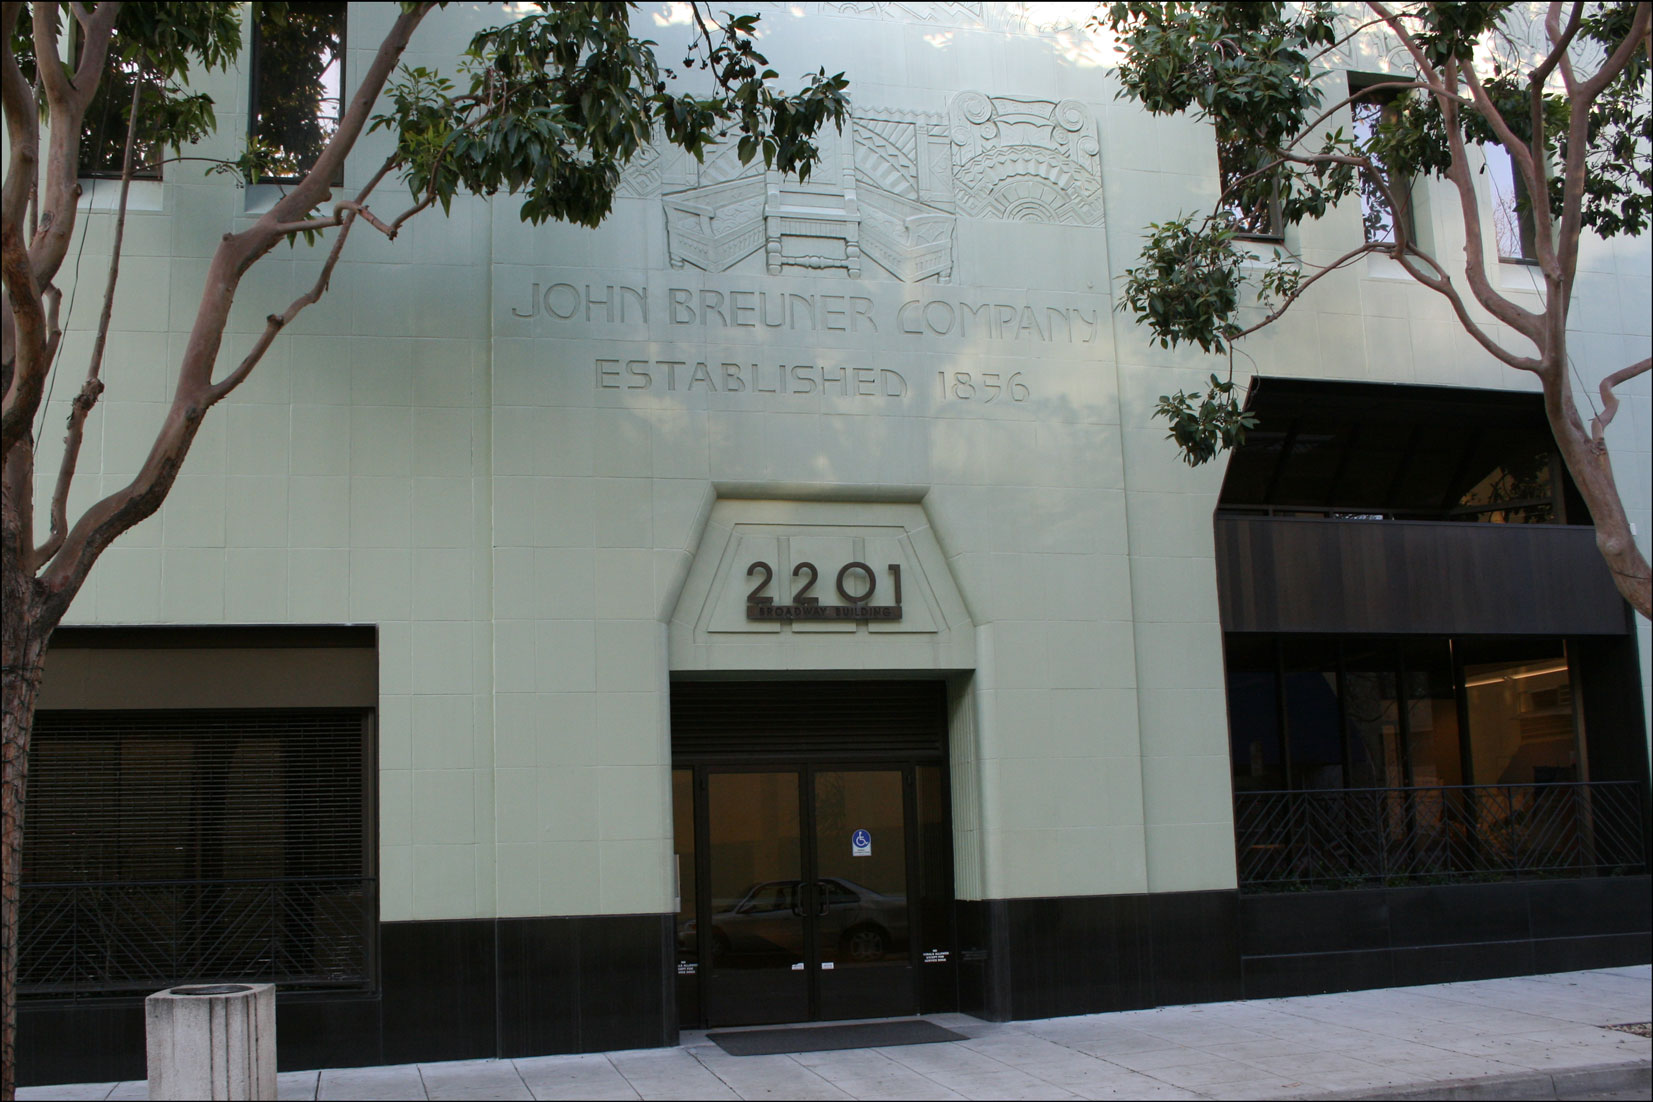 The Breuner Building in Oakland, California